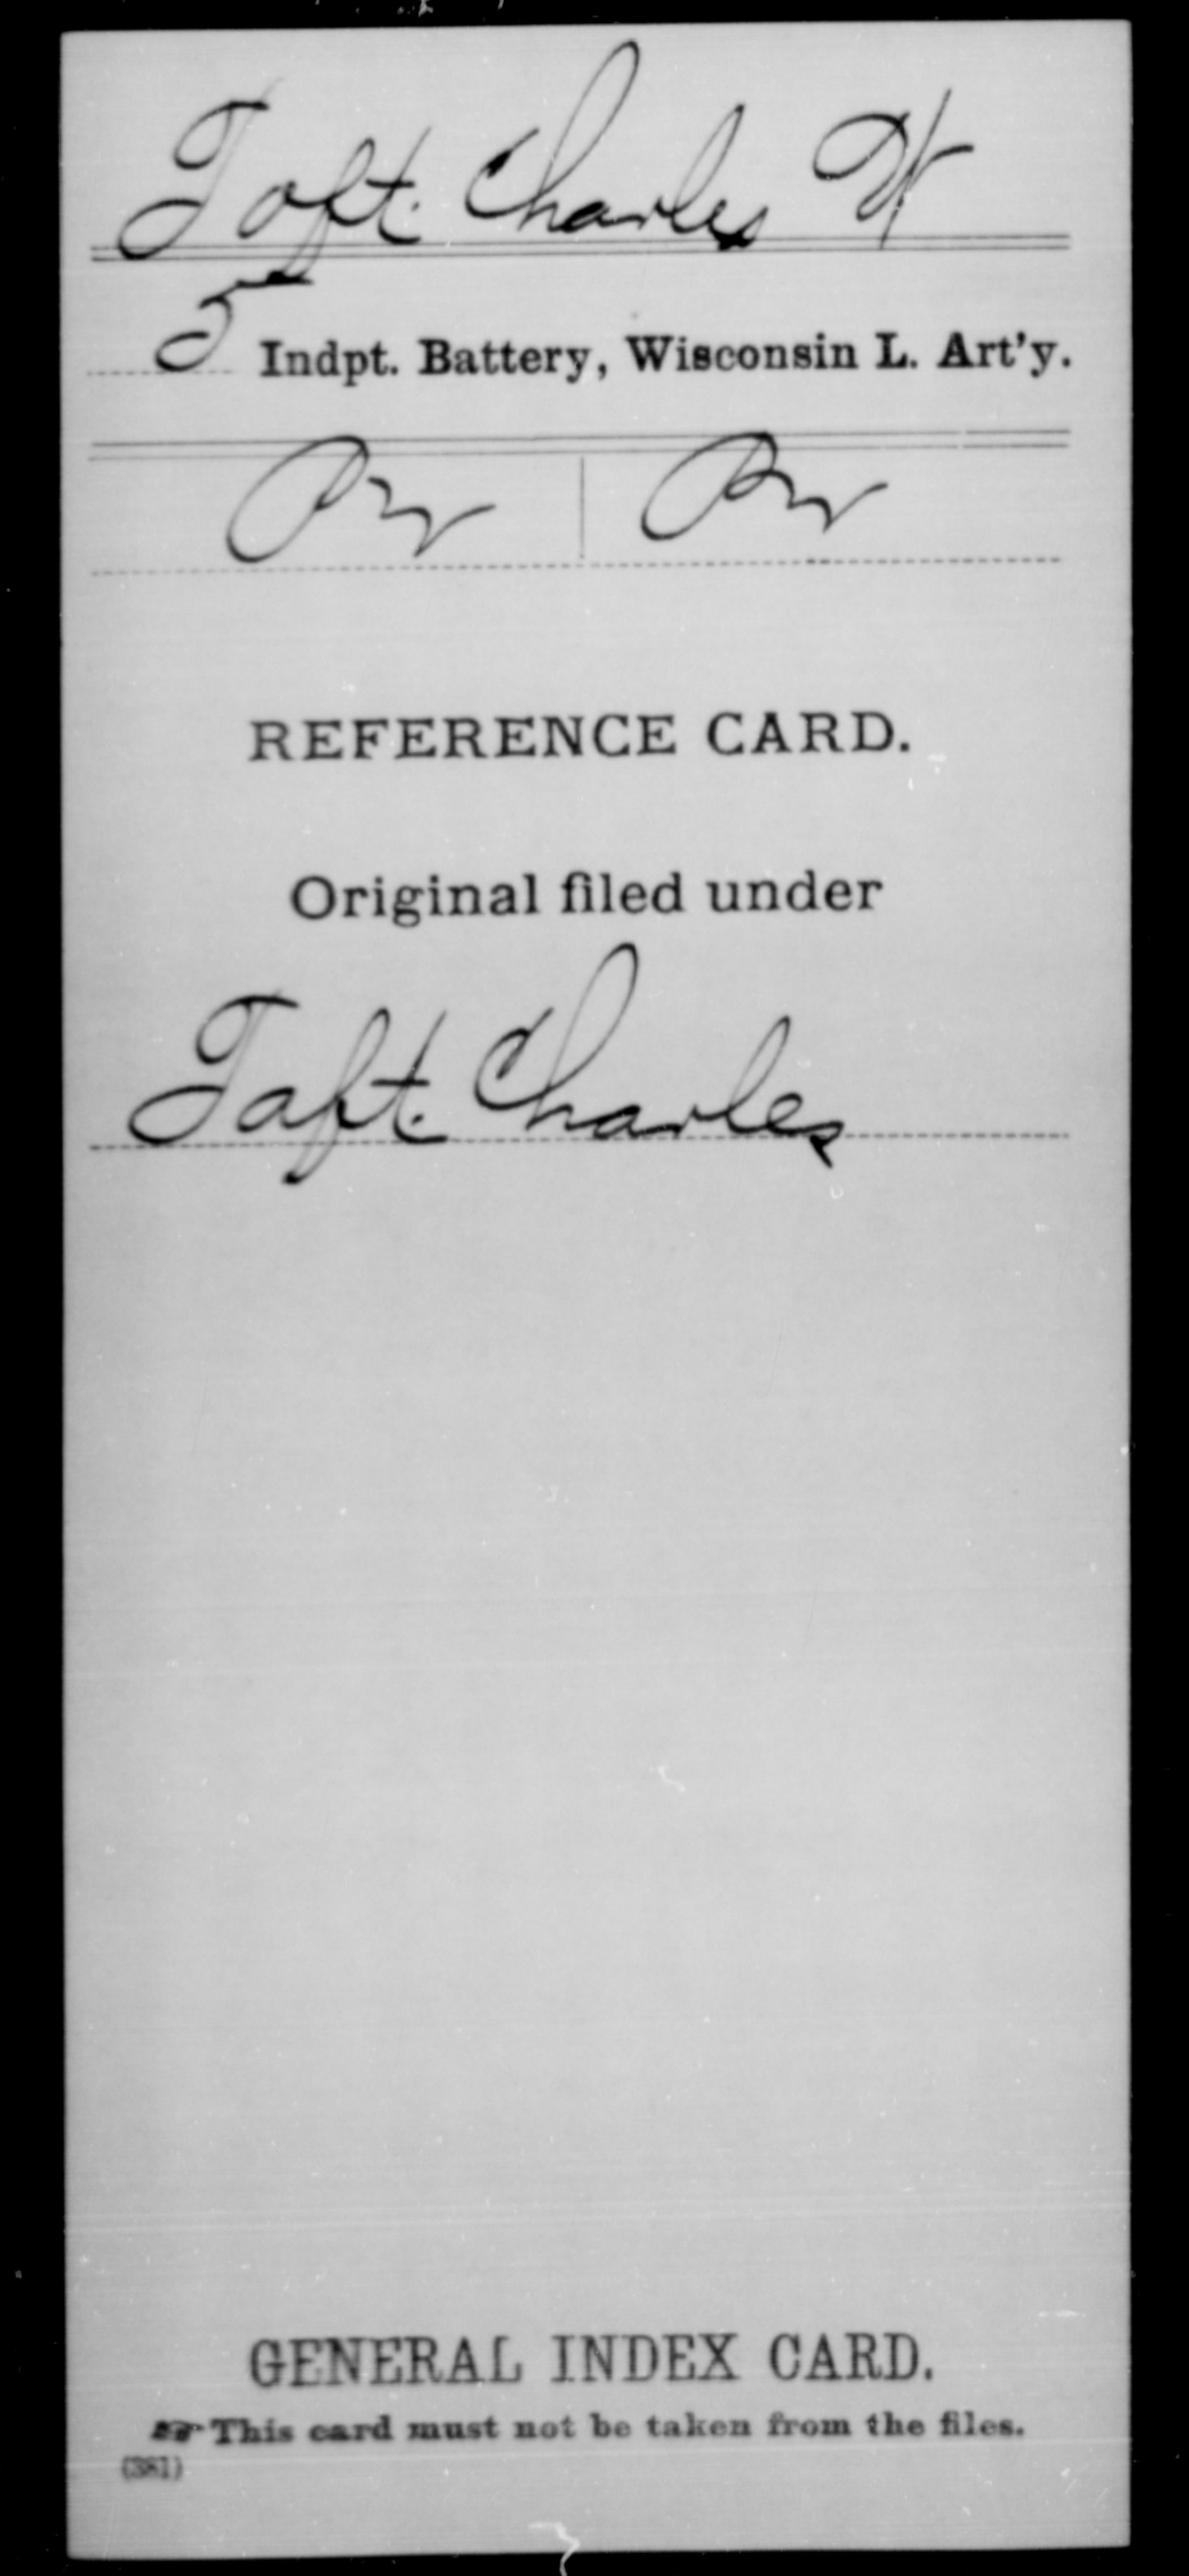 Wisconsin] Toft, Charles W - 5th Independent Battery, Light Artillery, Company [Blank